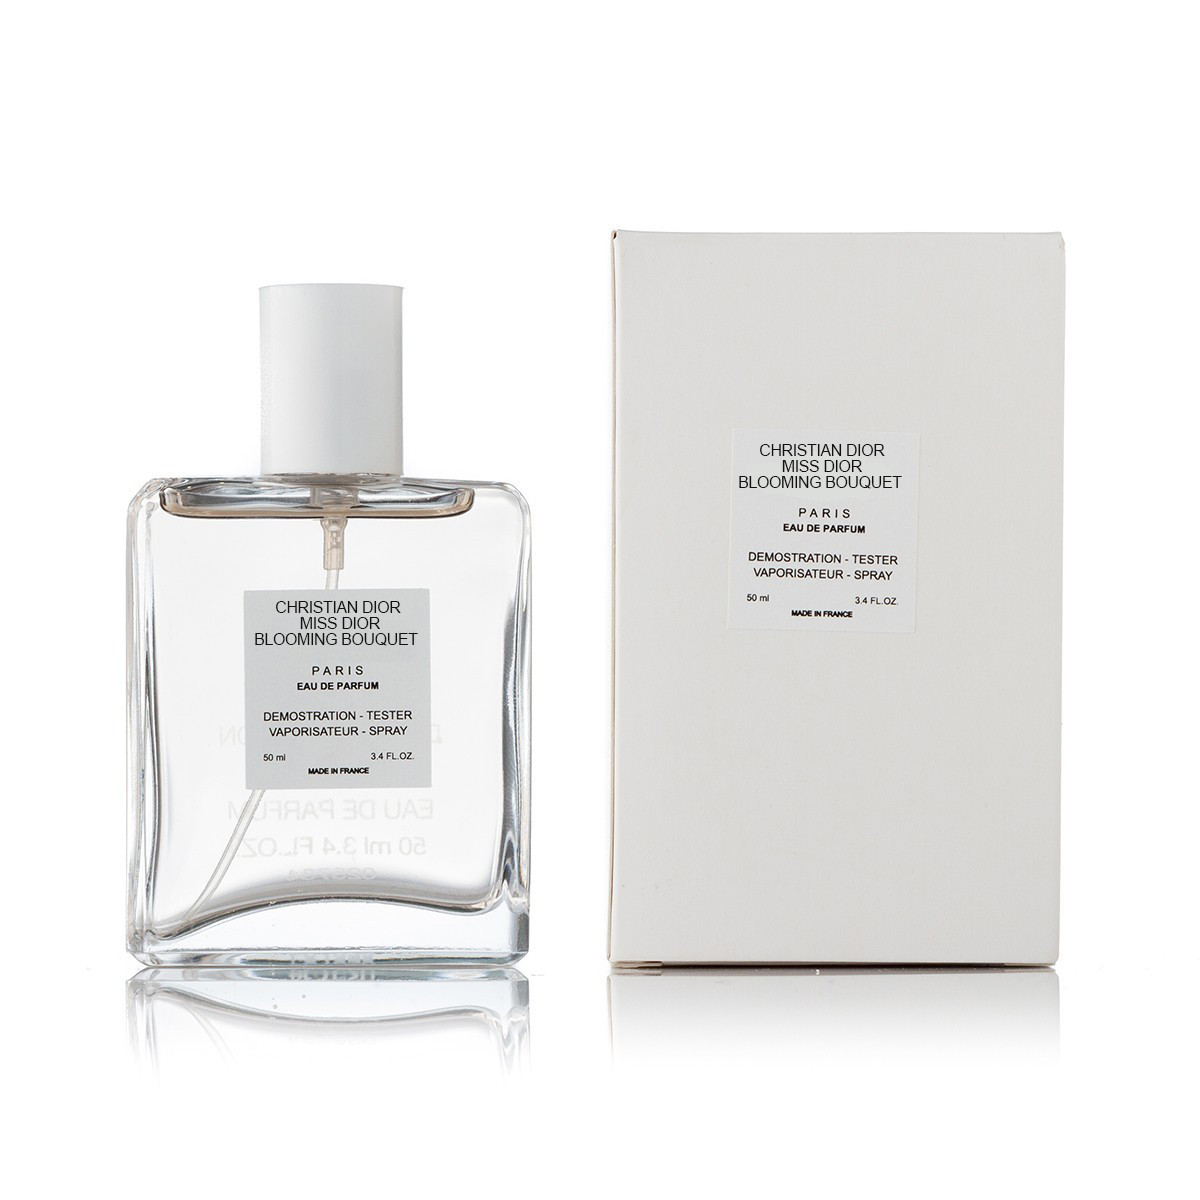 CD Miss Dior Blooming Bouquet - White Tester 50ml